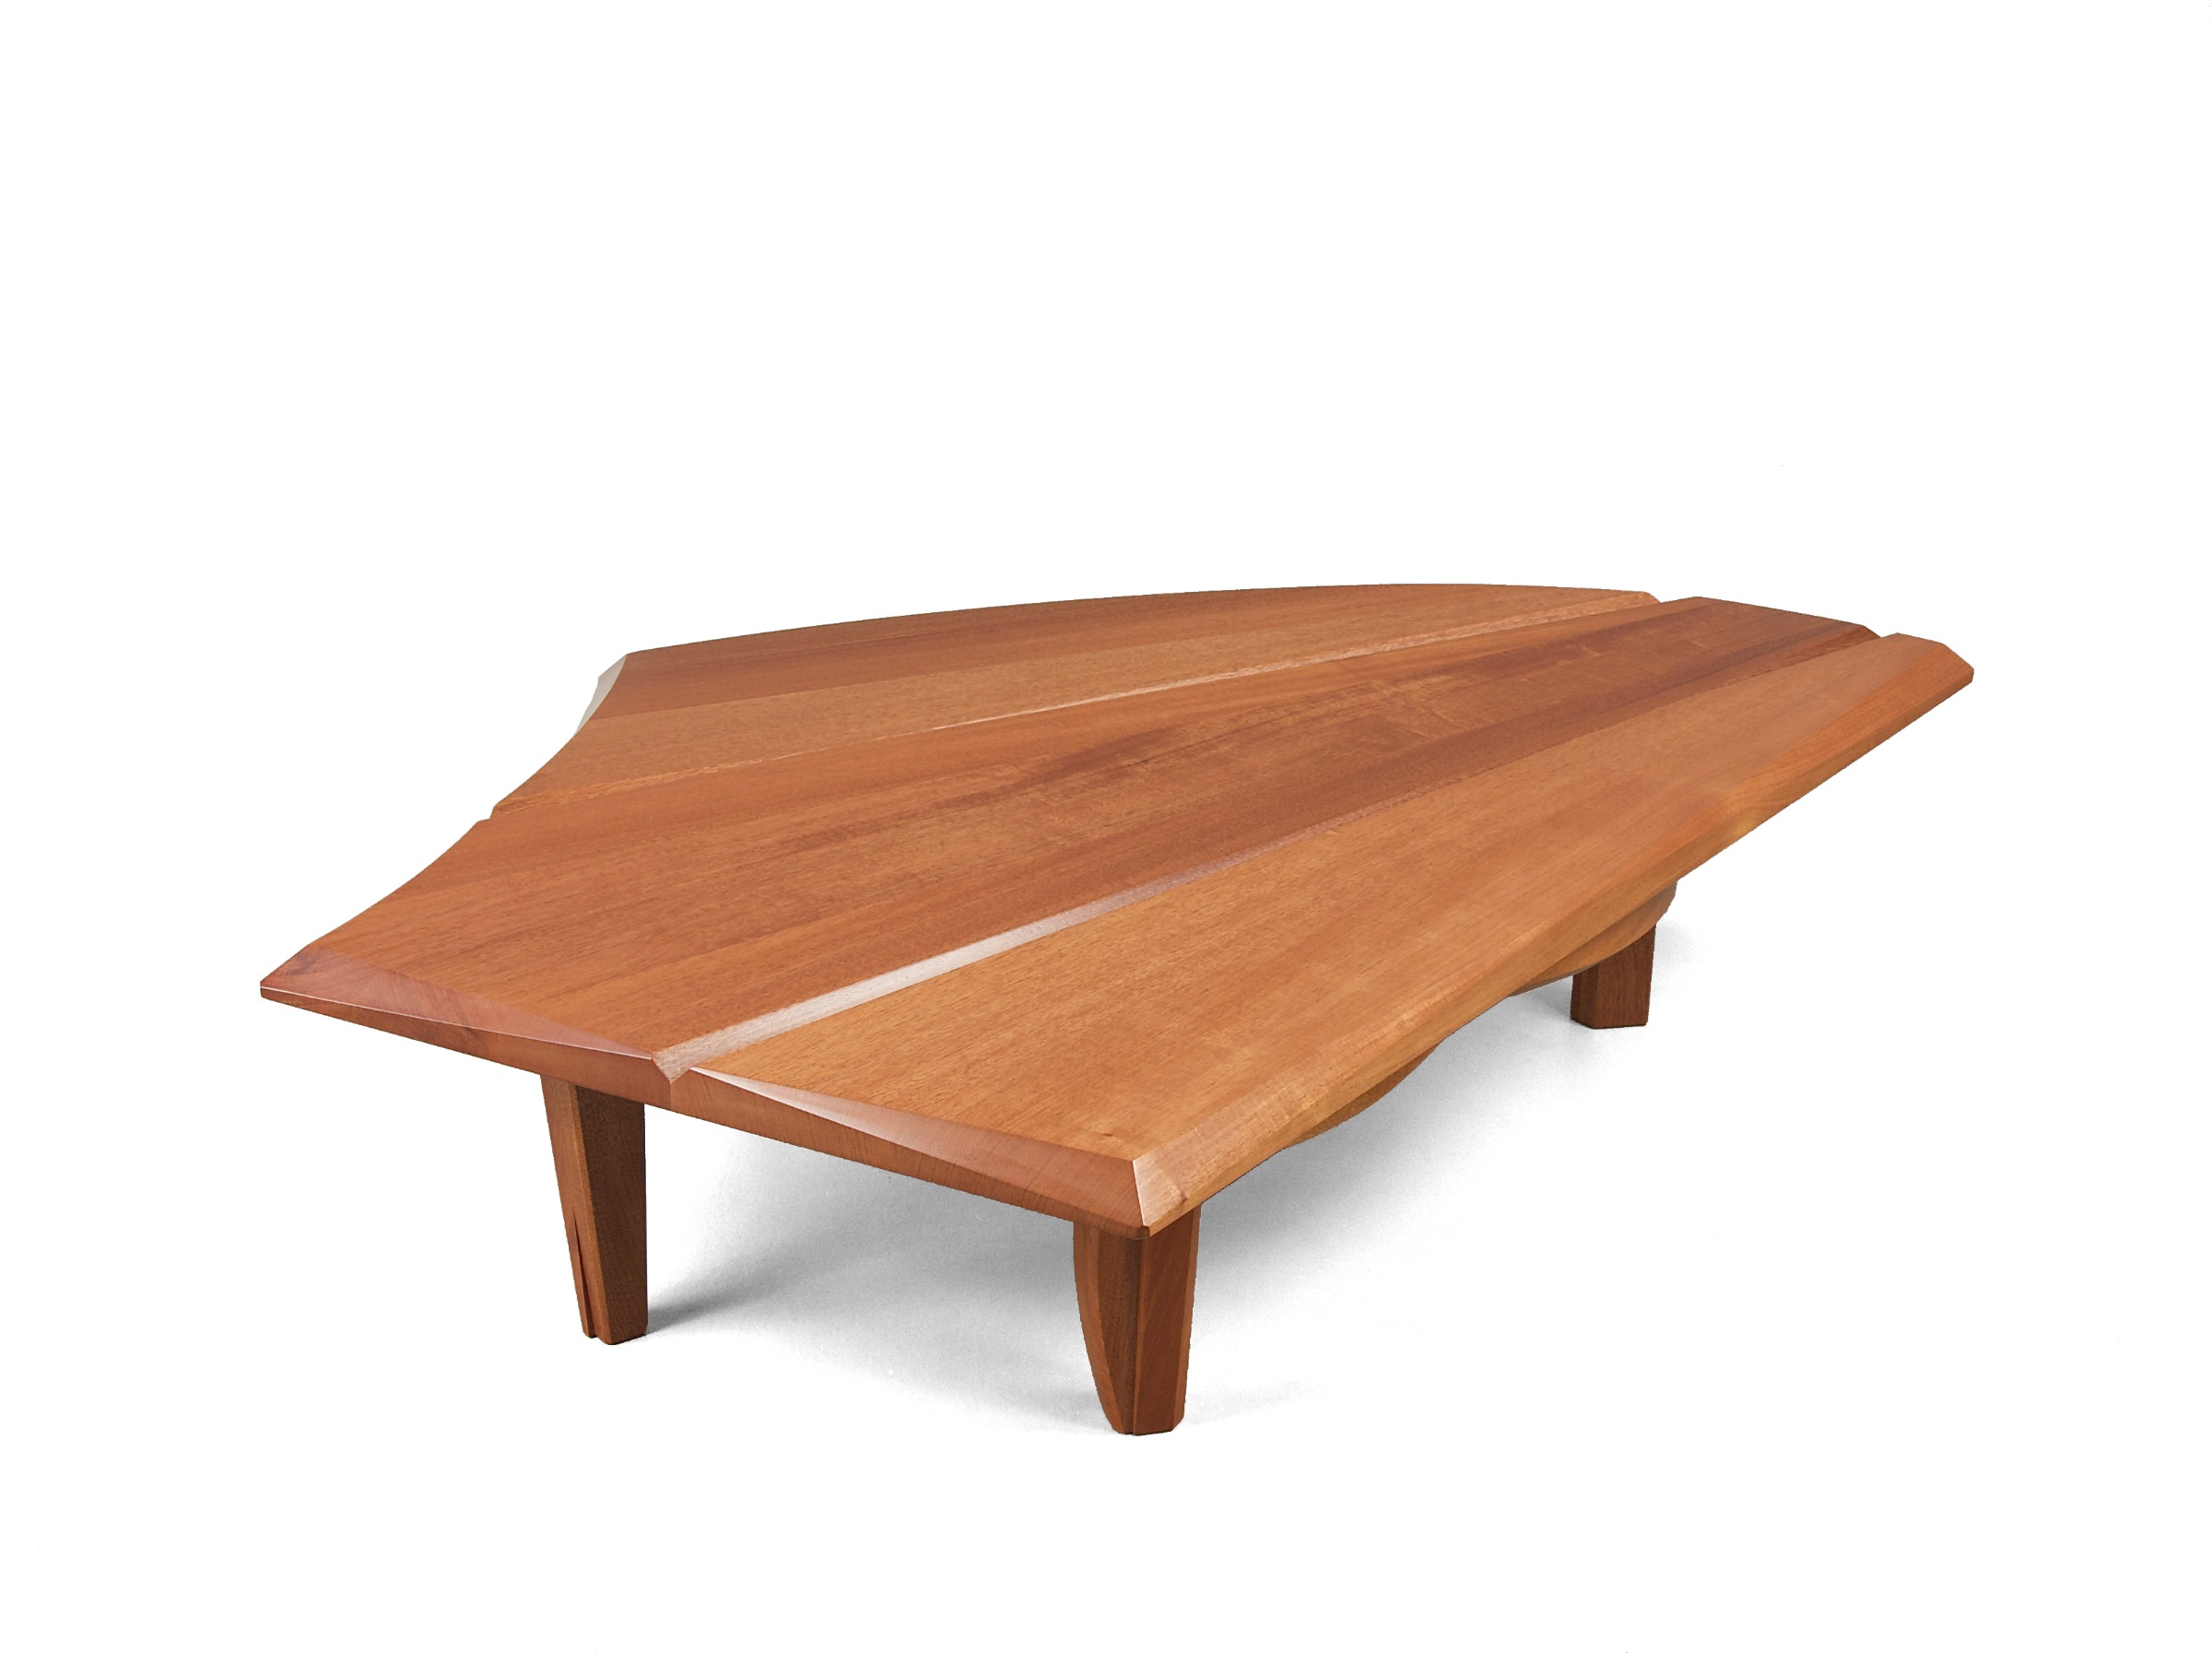 Curved Wood Coffee Tables Nico Yektai: Curved Coffee Table- Modern Wood Coffee Table